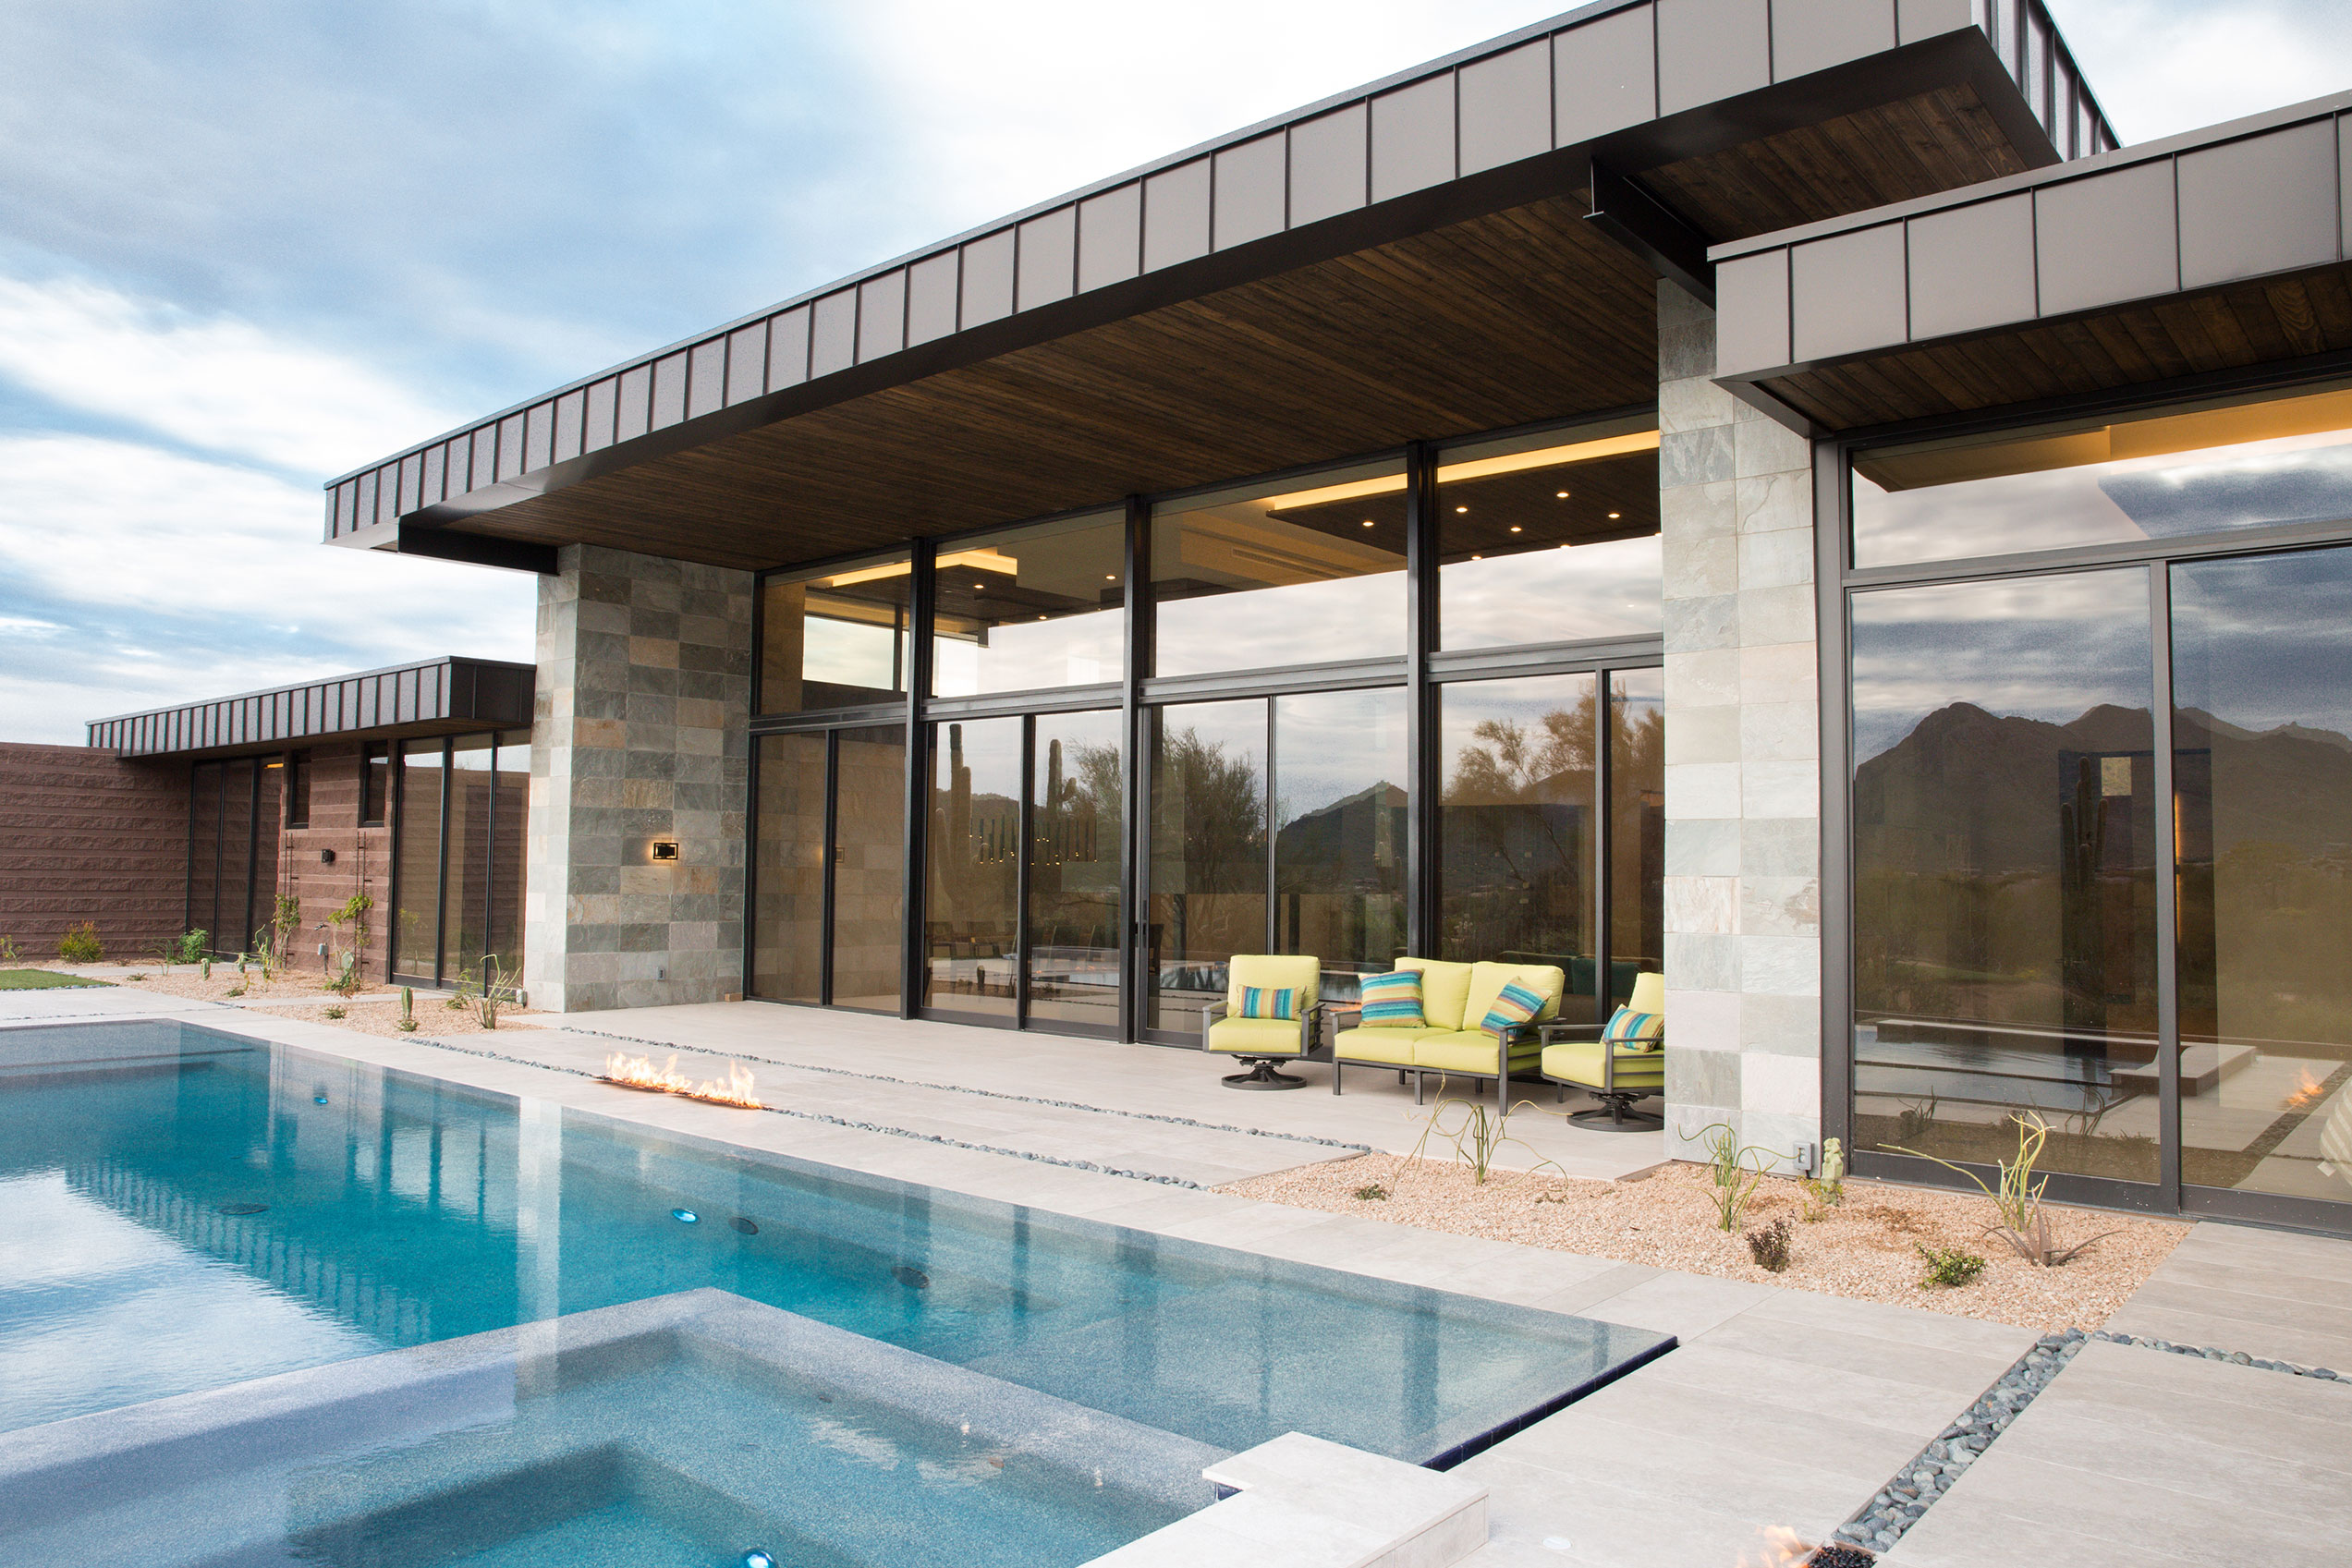 To capitalize on the desert landscape, architect Mark Sever went big with glass, incorporating floor-to-ceiling sliding patio doors.